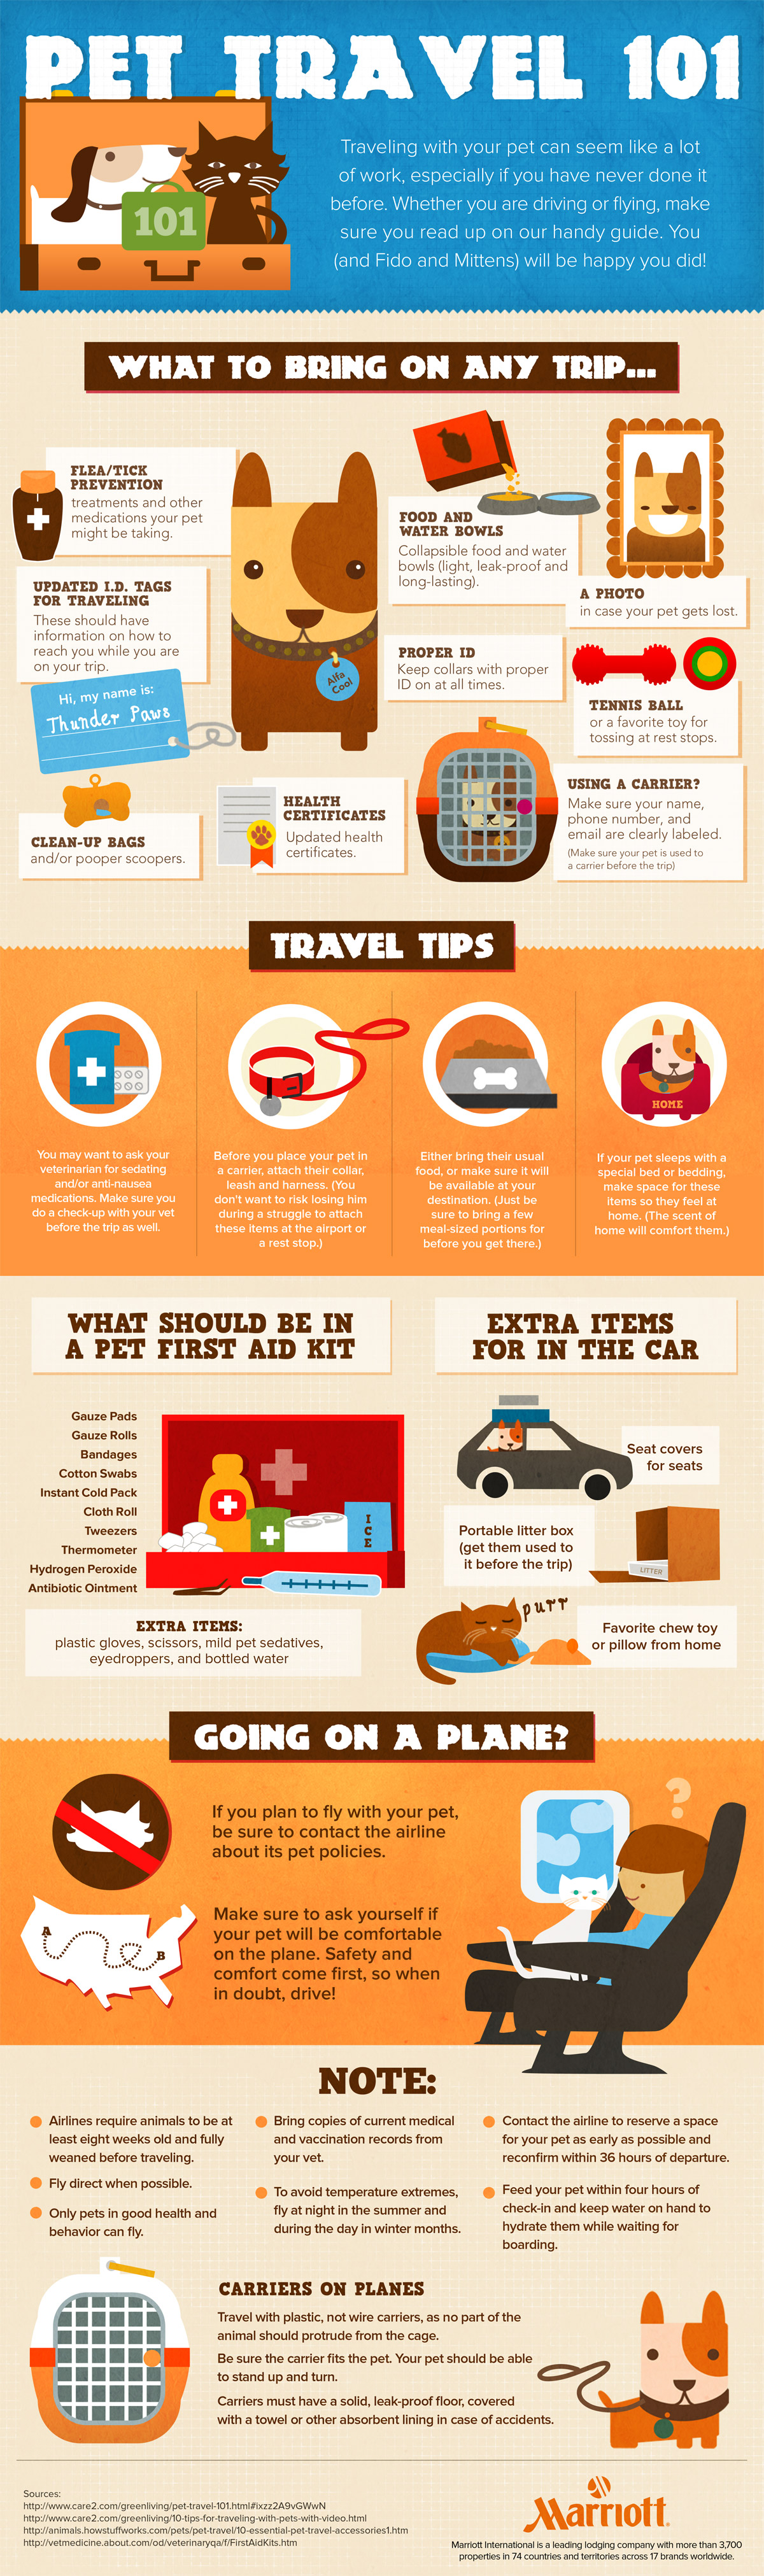 Image result for Exploration And Adventure: Some Fun Travel Ideas infographic